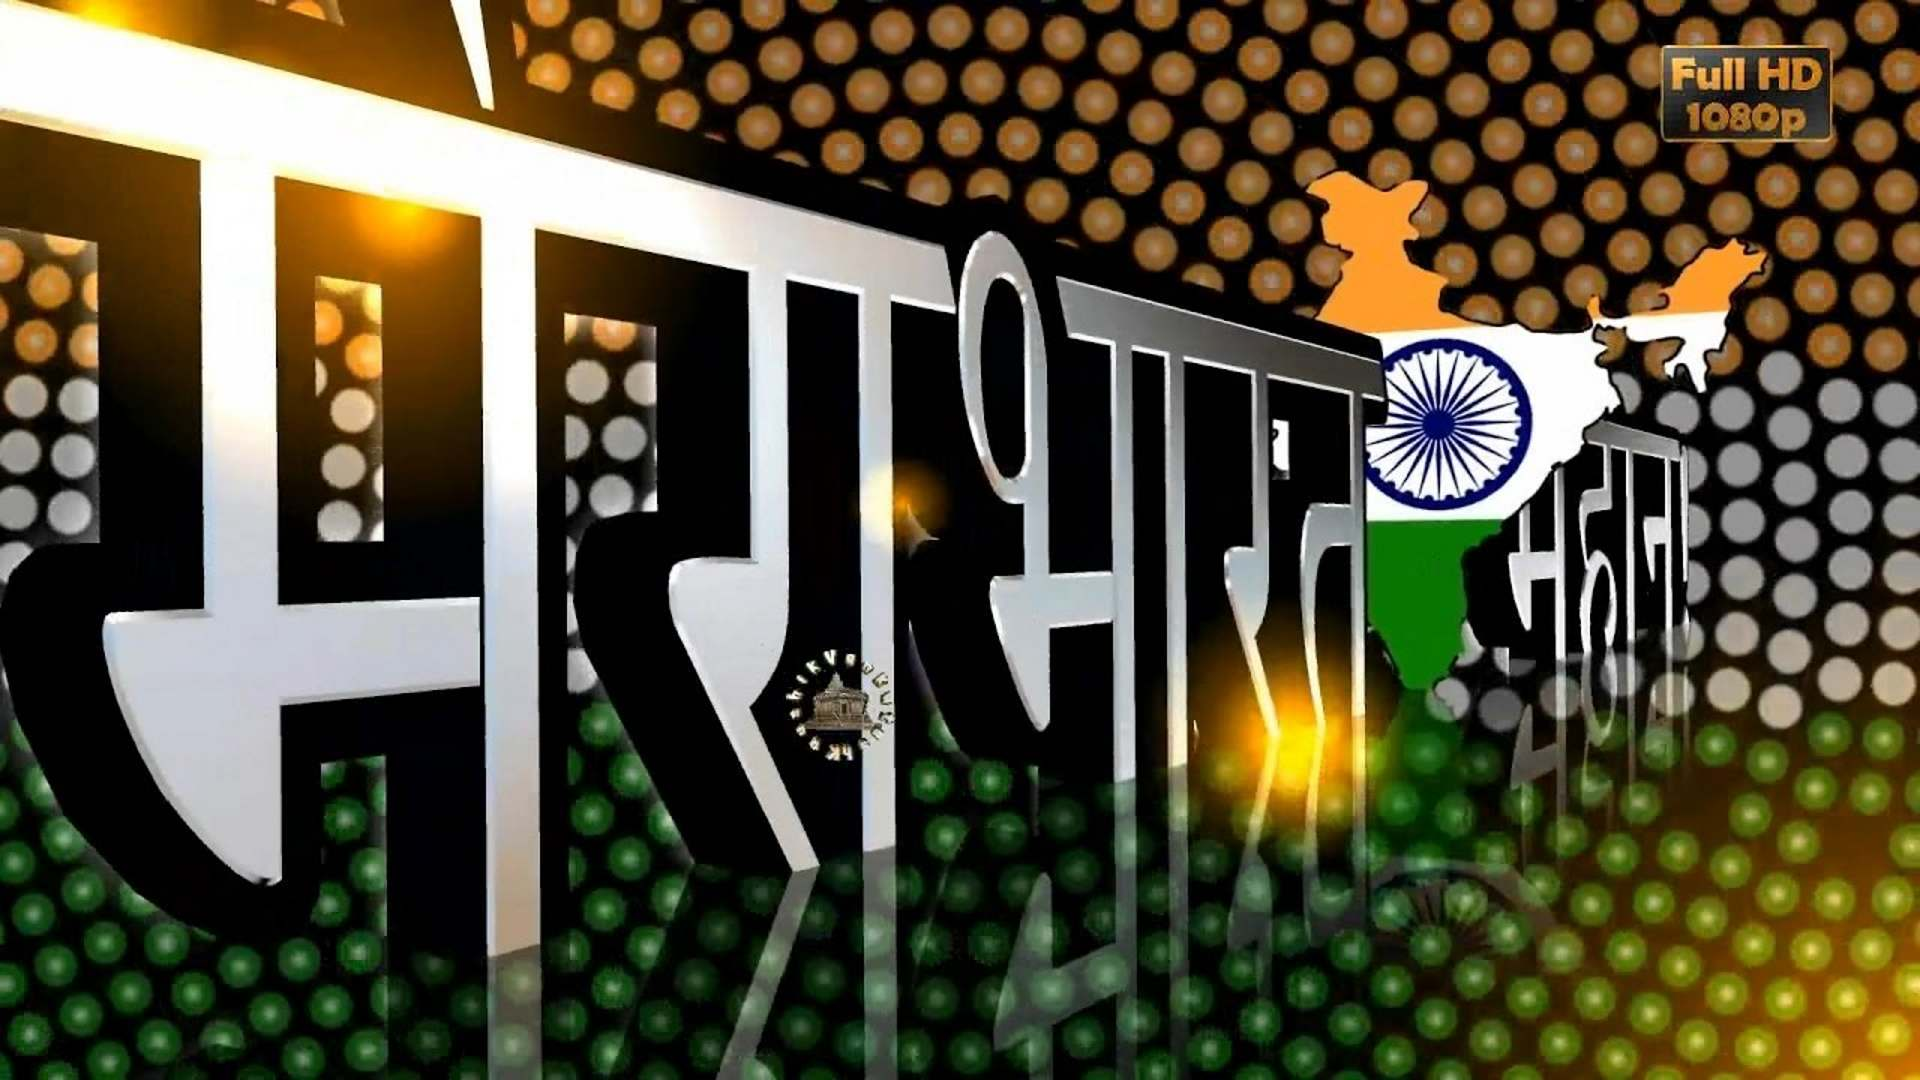 Hindi Greetings Image of Indian National Festival (Republic Day)